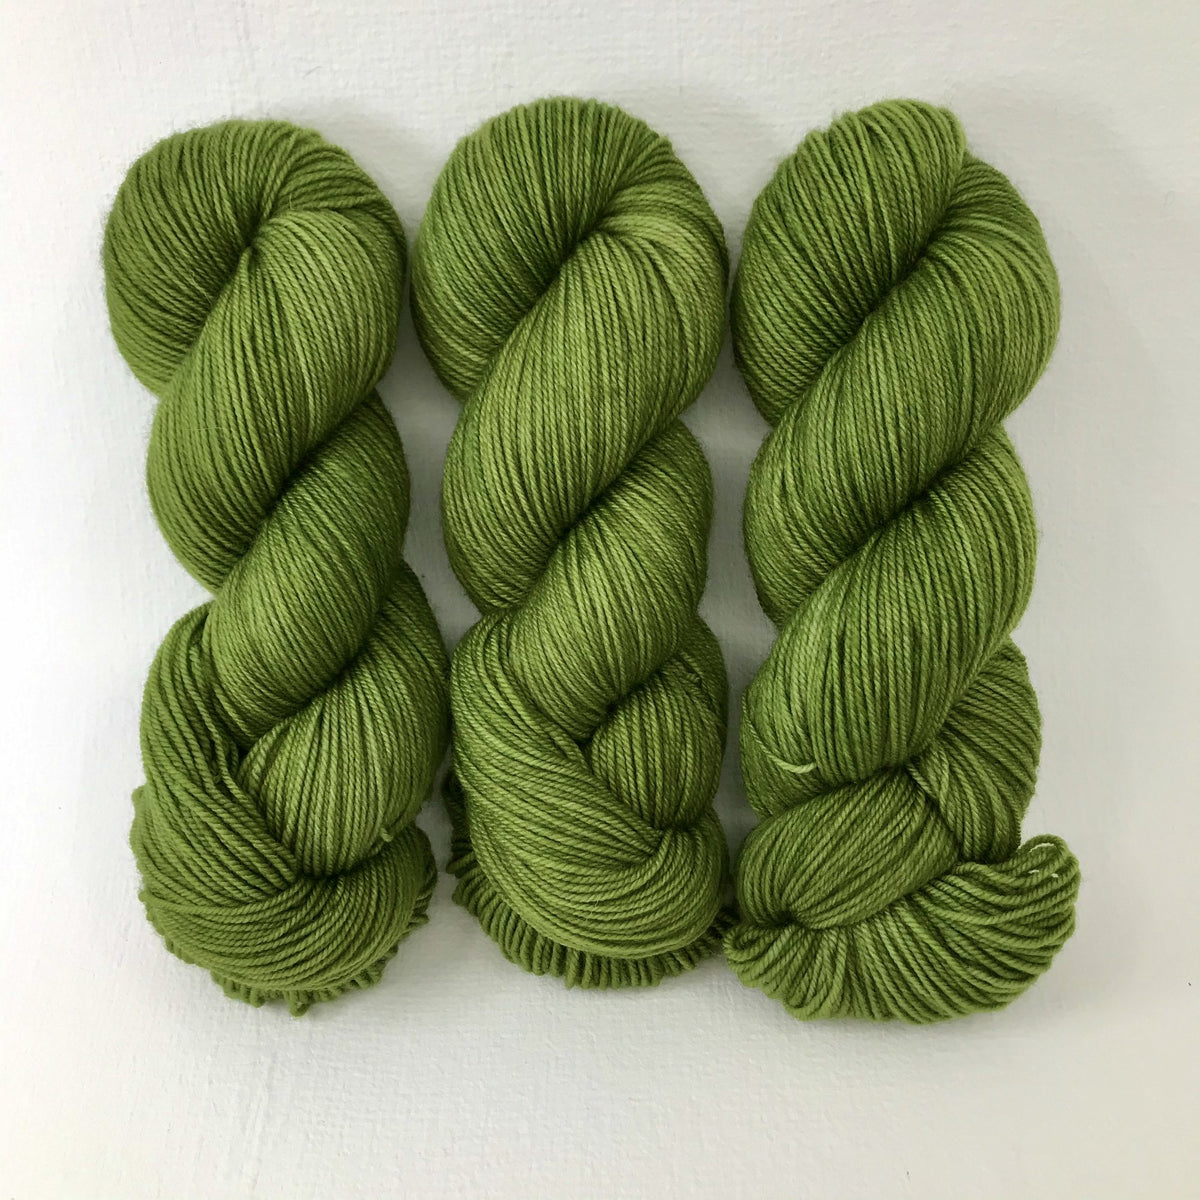 Mossy Bank - Merino Silk Fingering - Dyed Stock